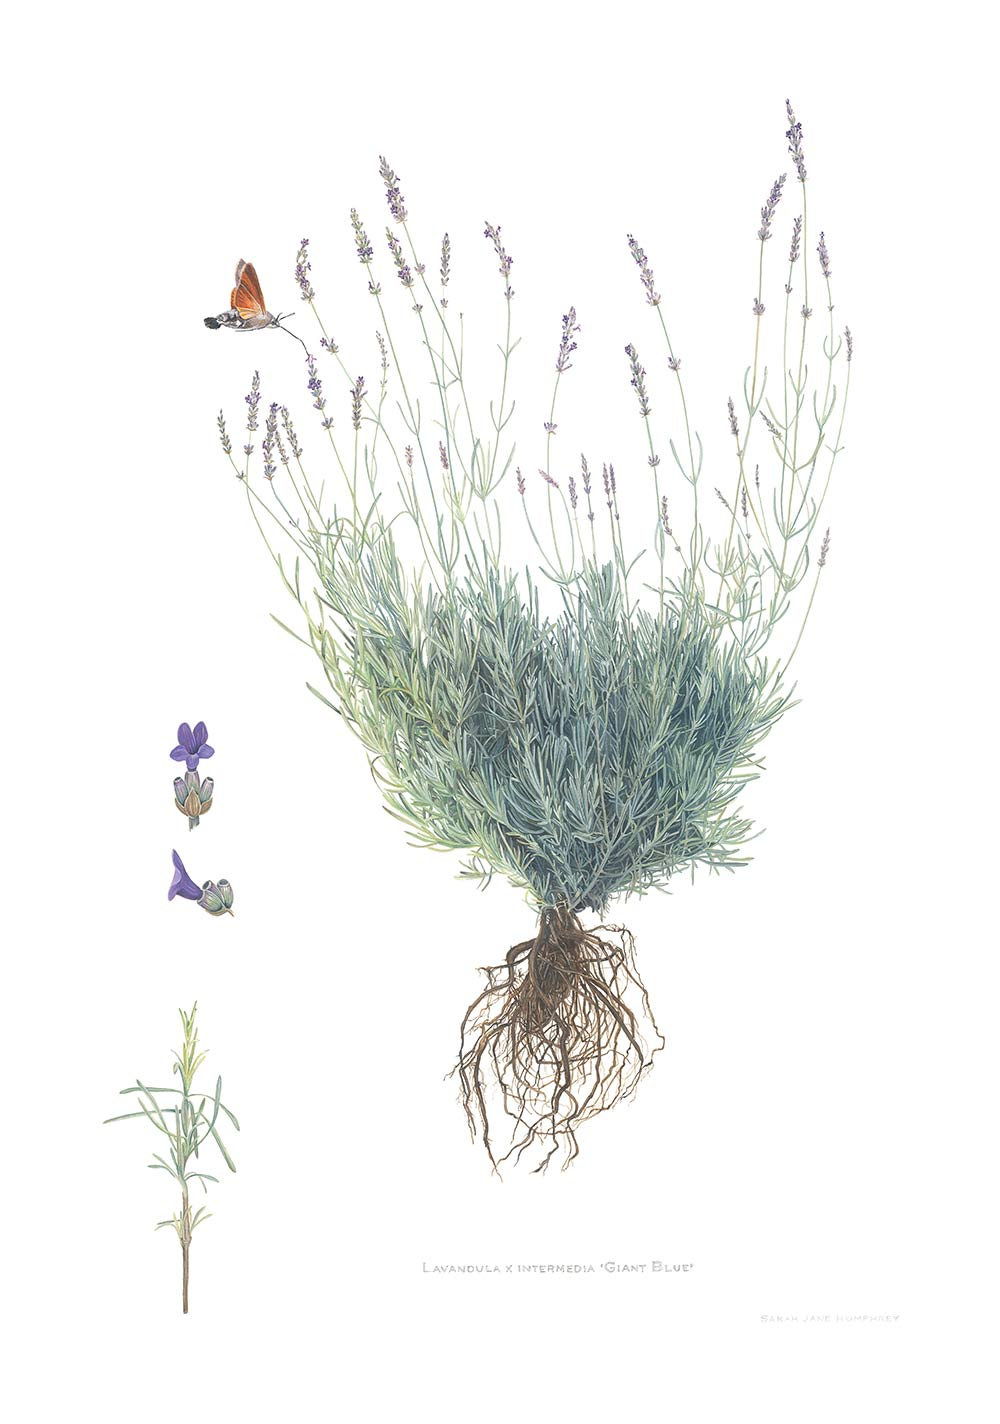 'Lavendula' Limited Edition Print for The RHS Collection